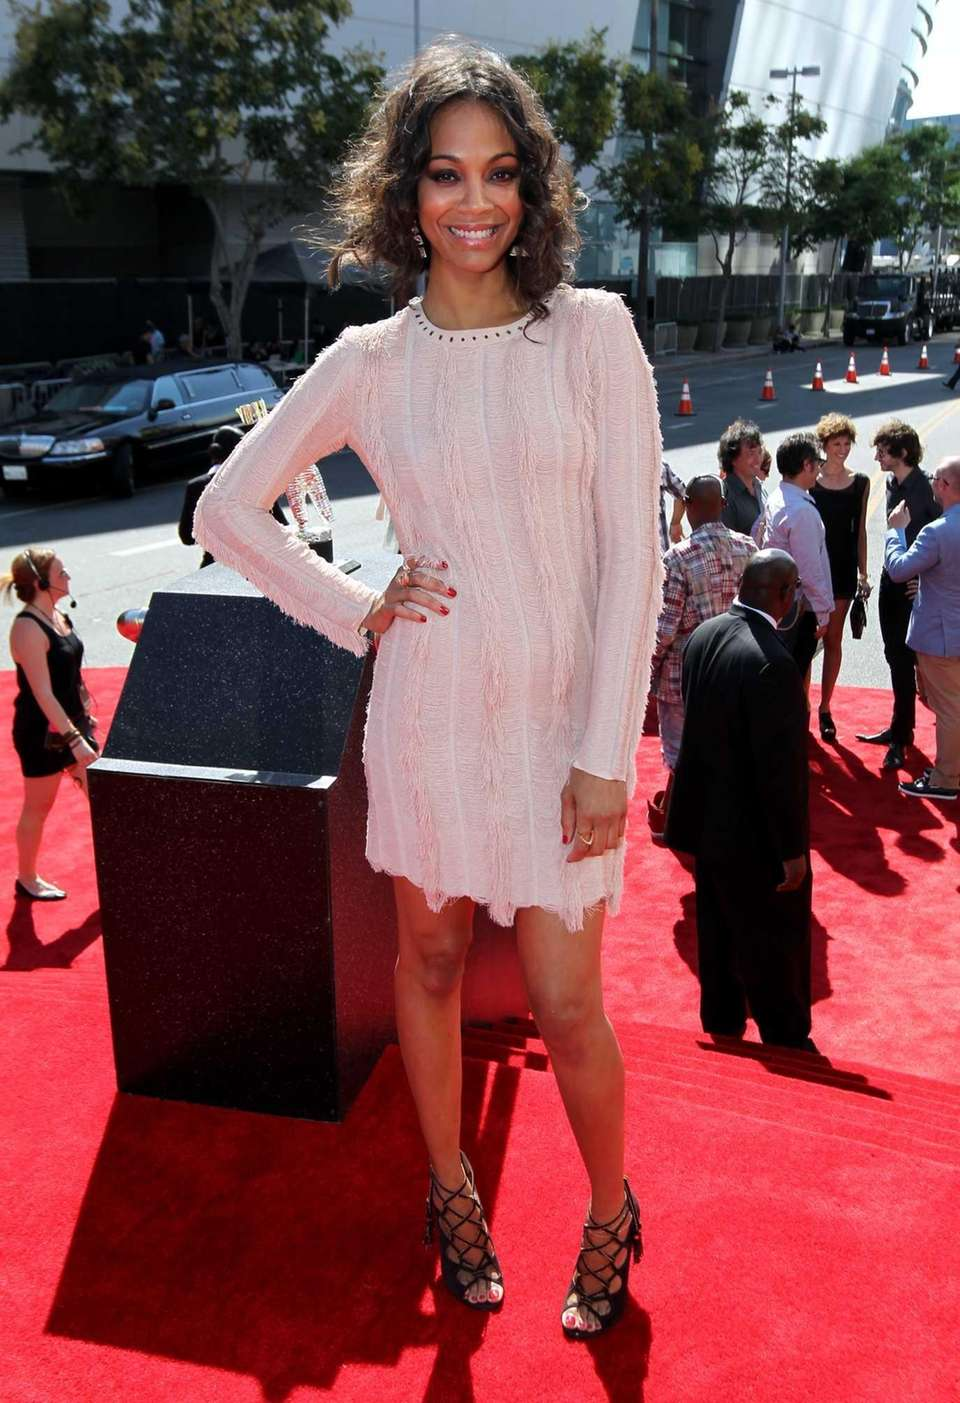 Zoe Saldana arrives at the MTV Video Music